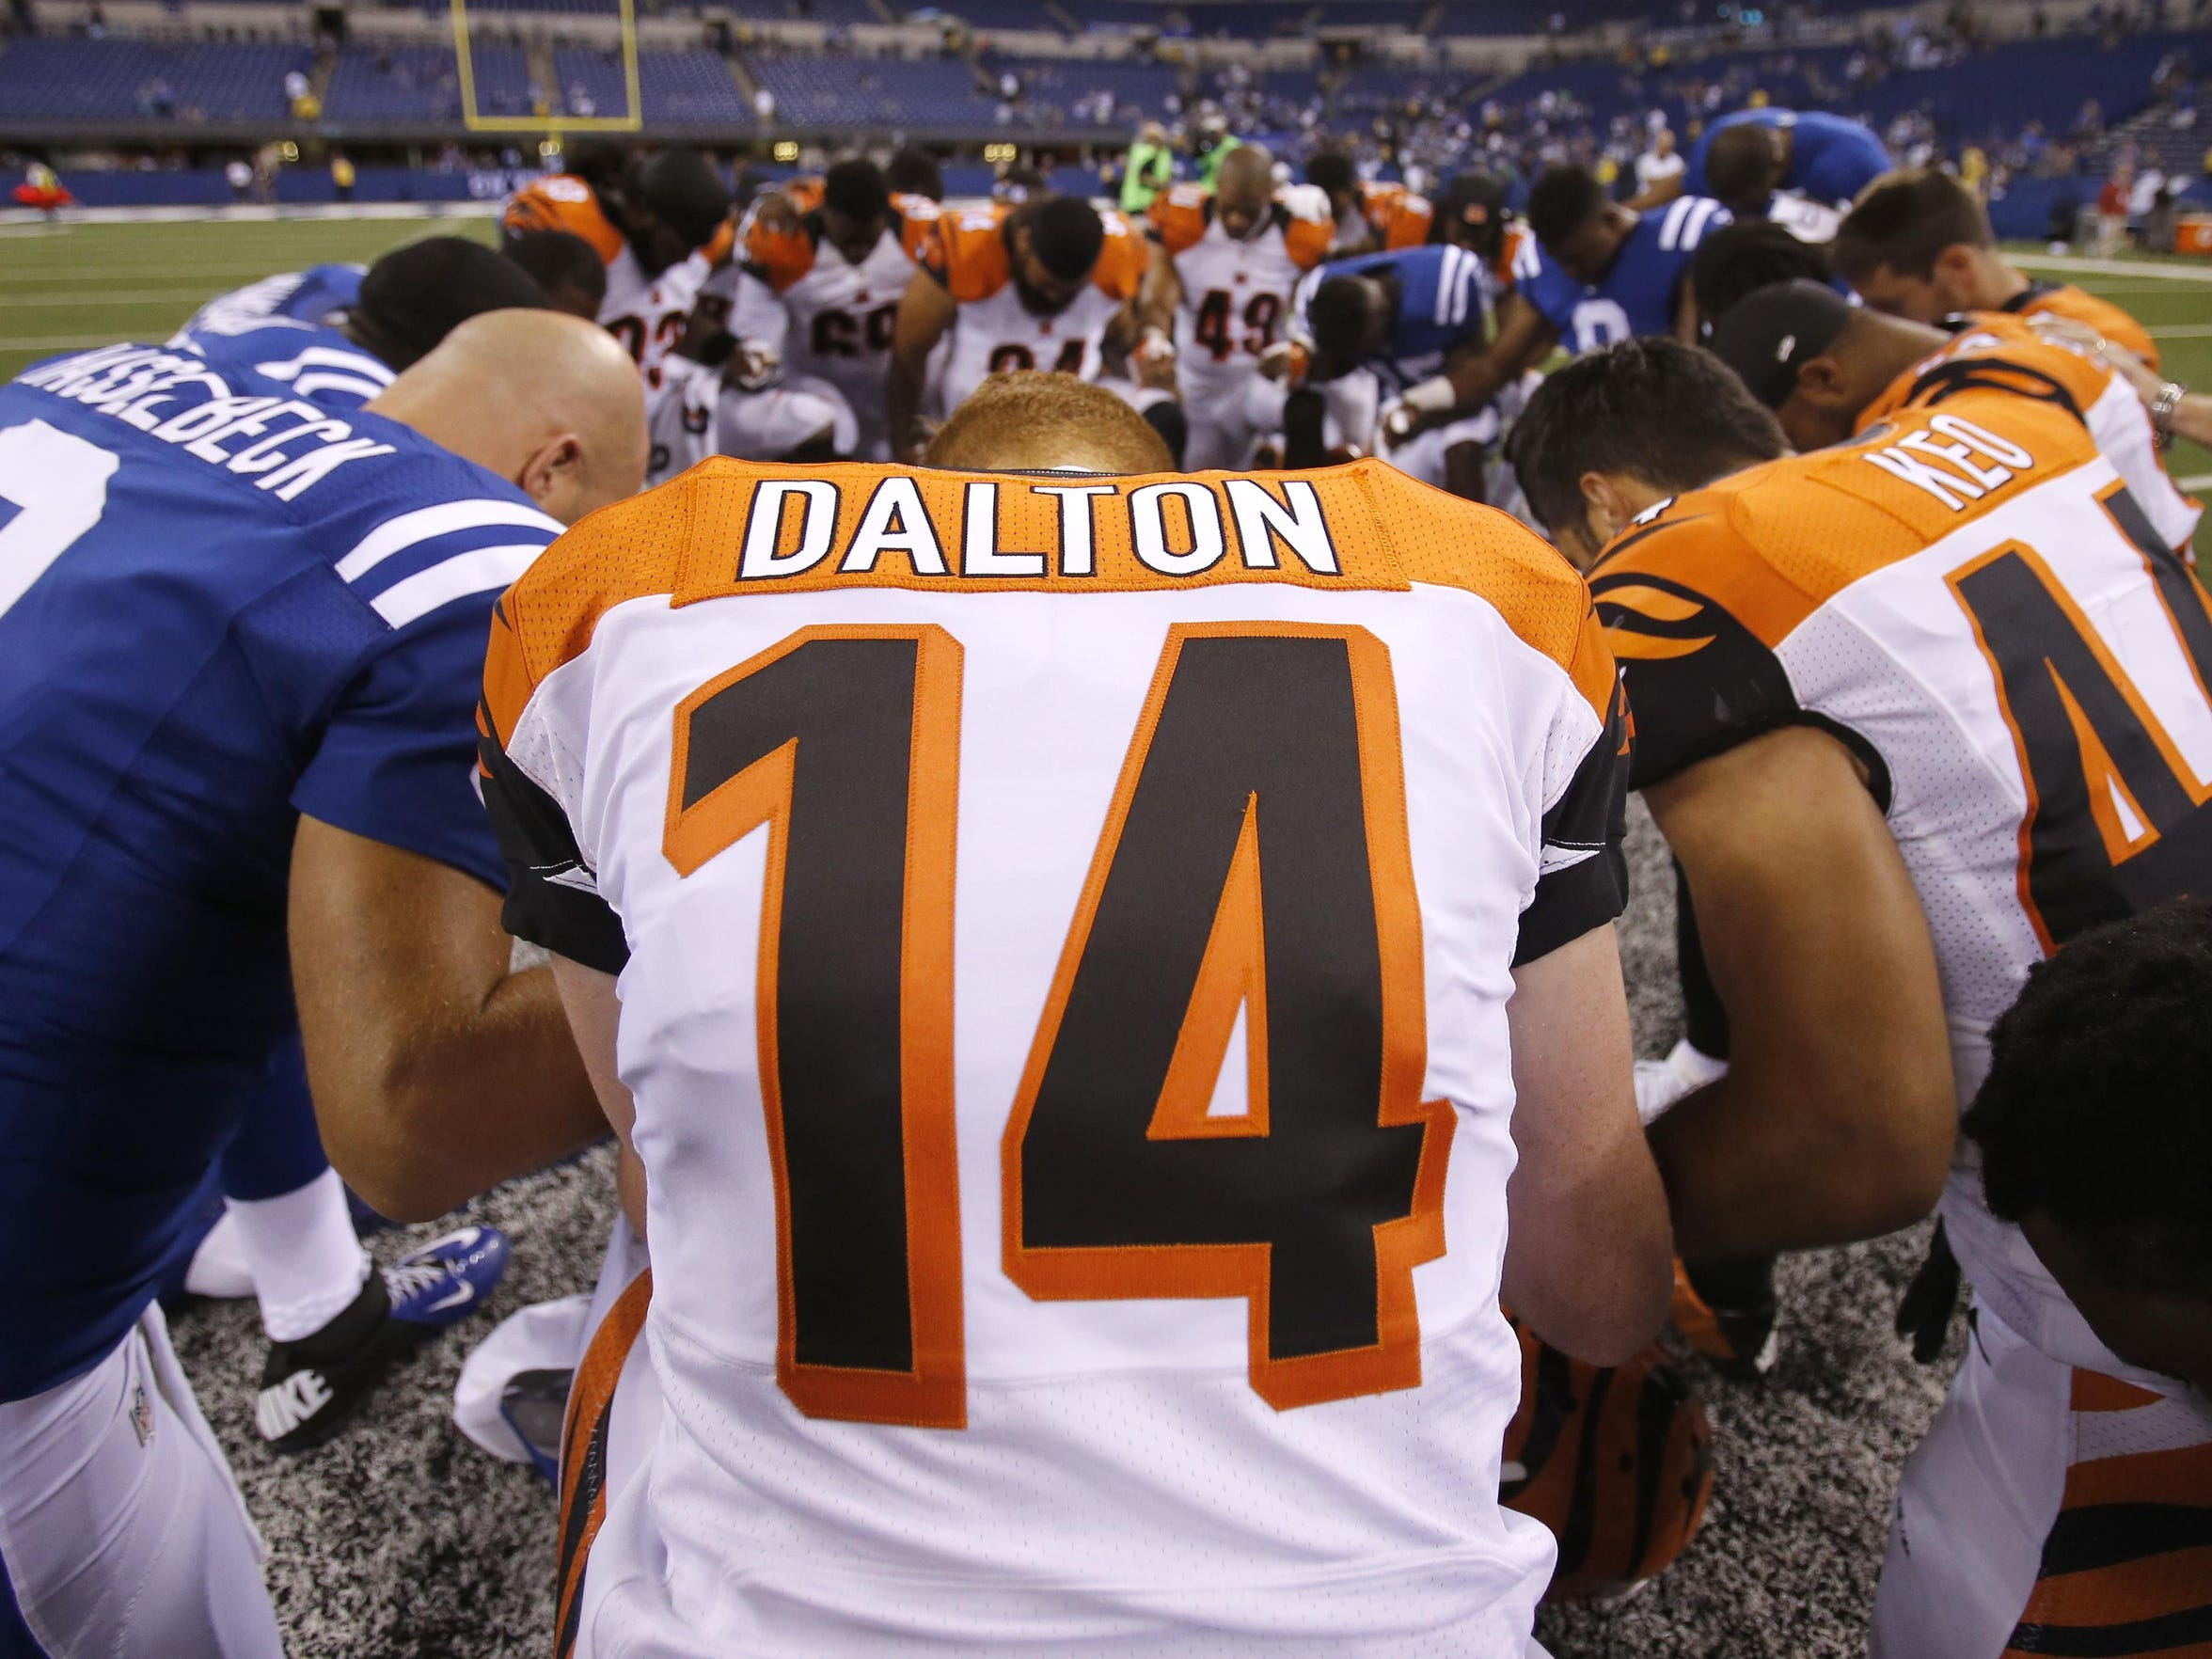 Andy Dalton kneels down in a joint prayer circle after